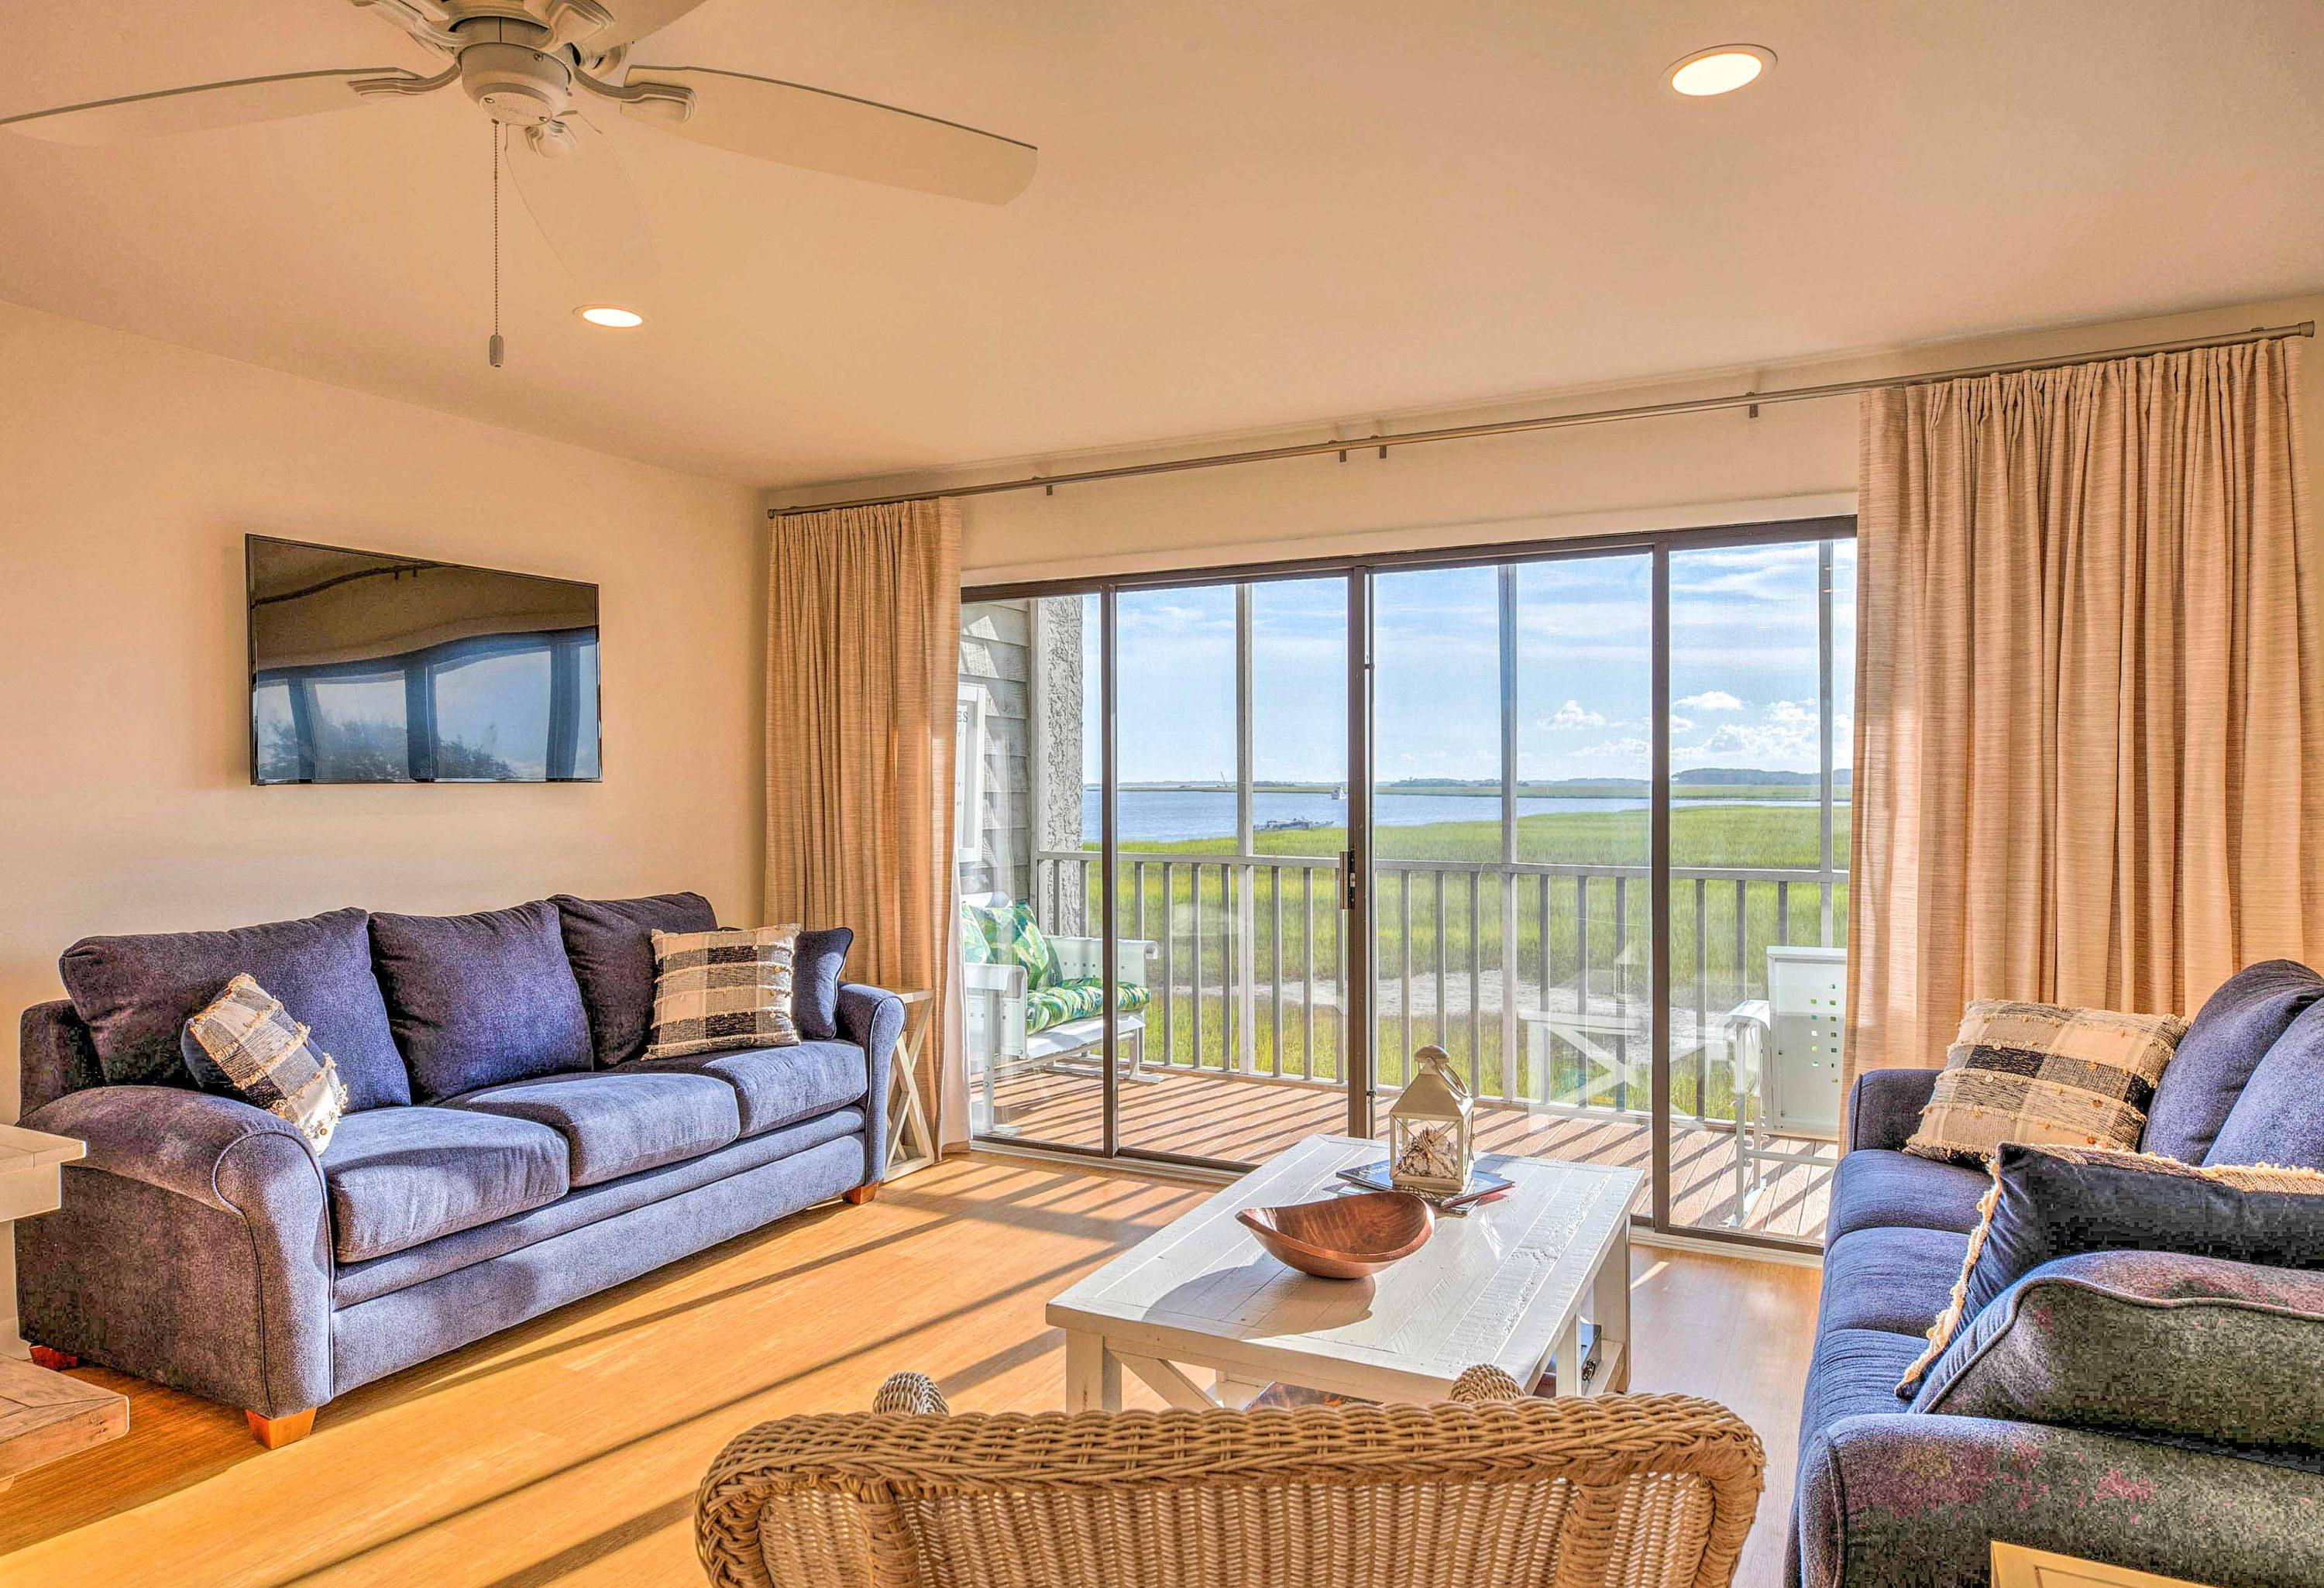 Mariners Cay Homes For Sale - 93 Mariners Cay, Folly Beach, SC - 29